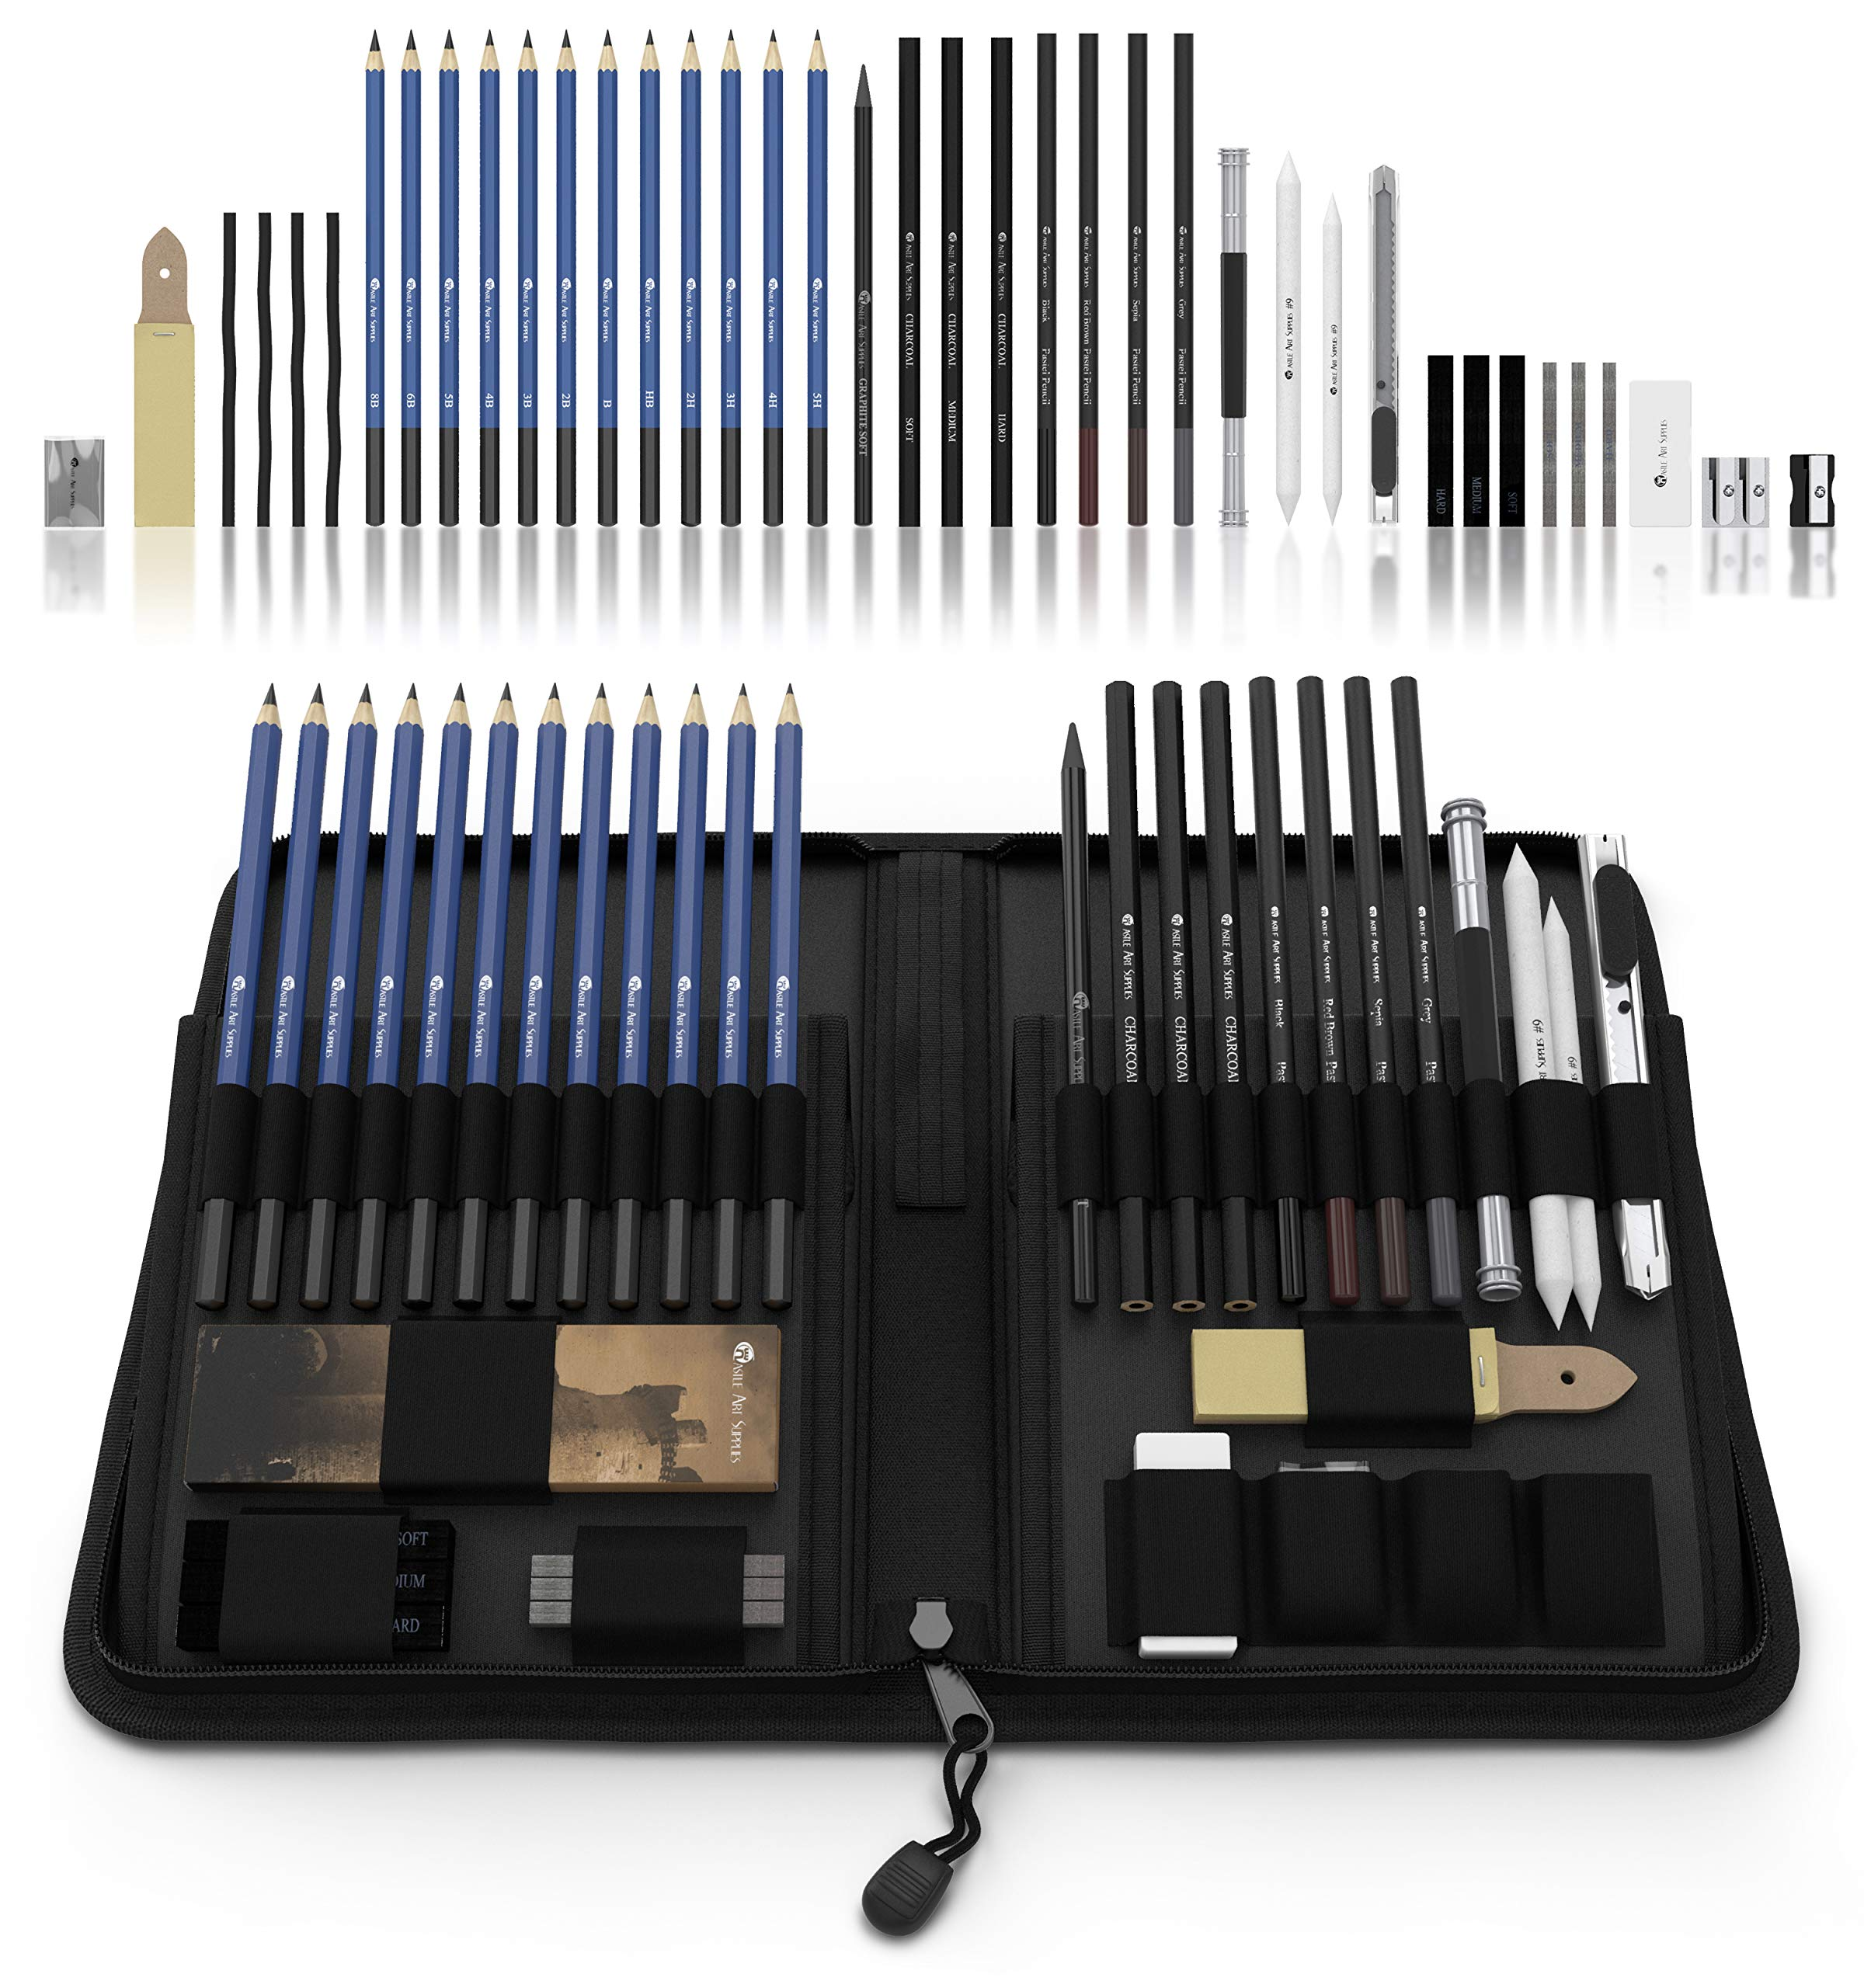 Castle Art Supplies Graphite Drawing Pencils and Sketch Set (40-Piece Kit), Complete Artist Kit Includes Charcoals, Pastels and Zippered Carry Case, Includes Rare Pop-Up Stand by Castle Art Supplies